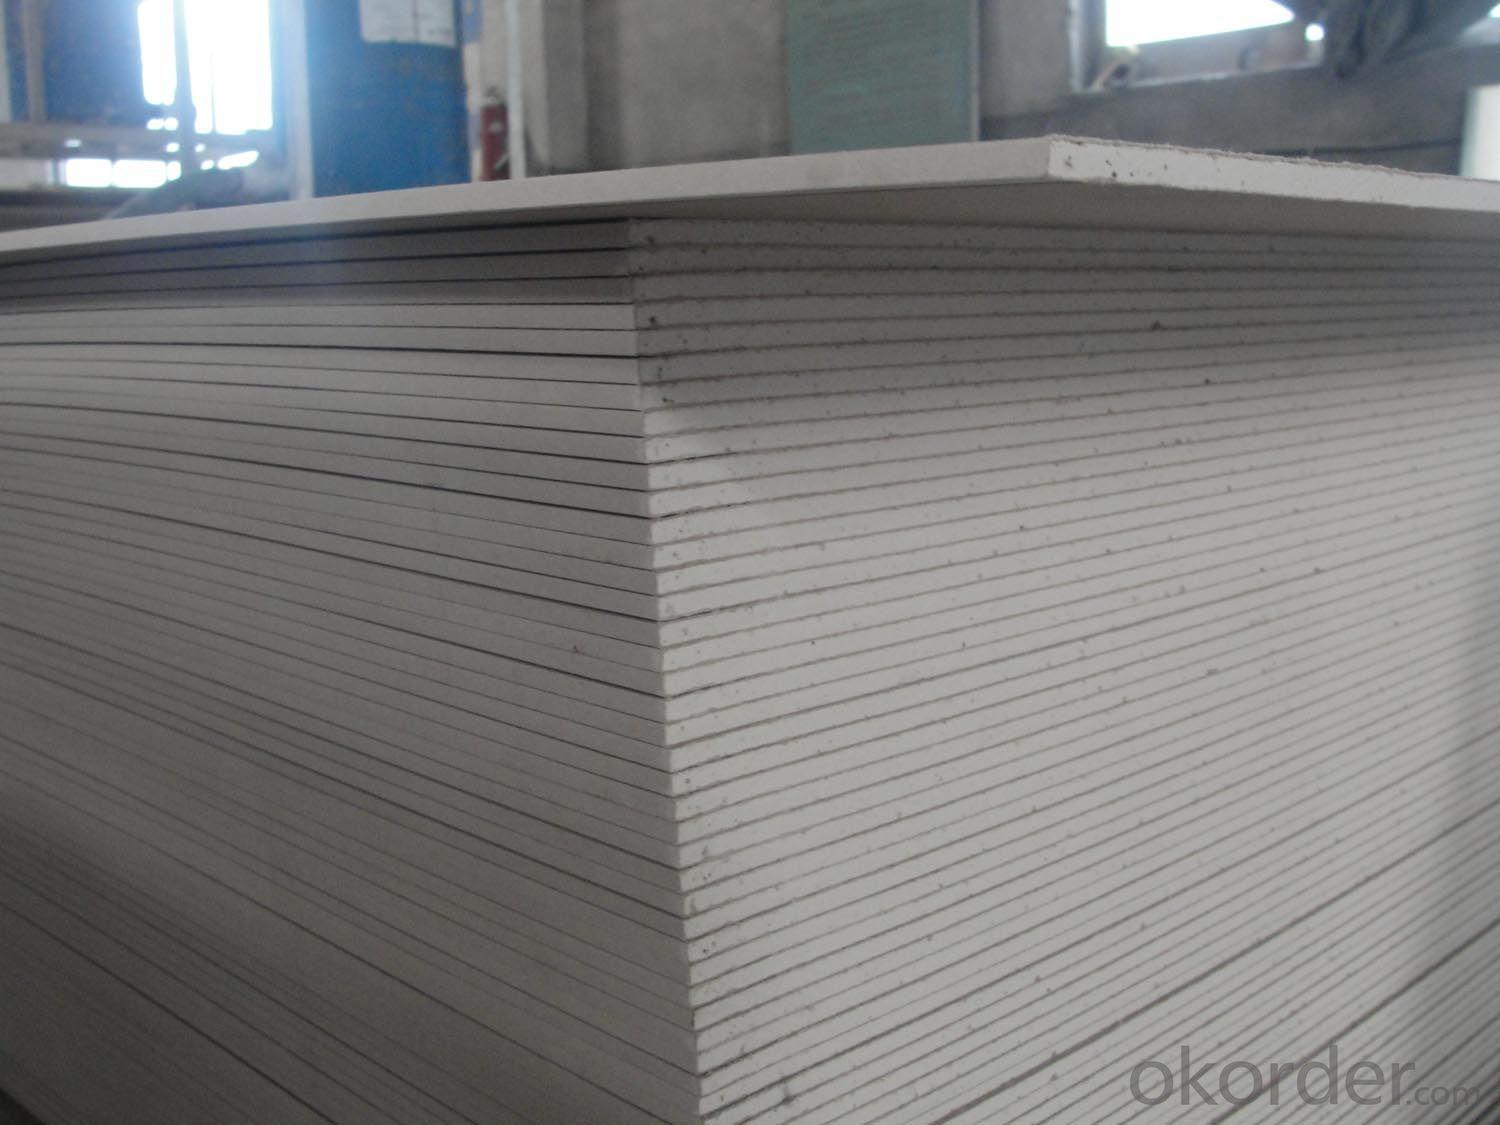 Gypsum Board for Drywall Partition for New Use